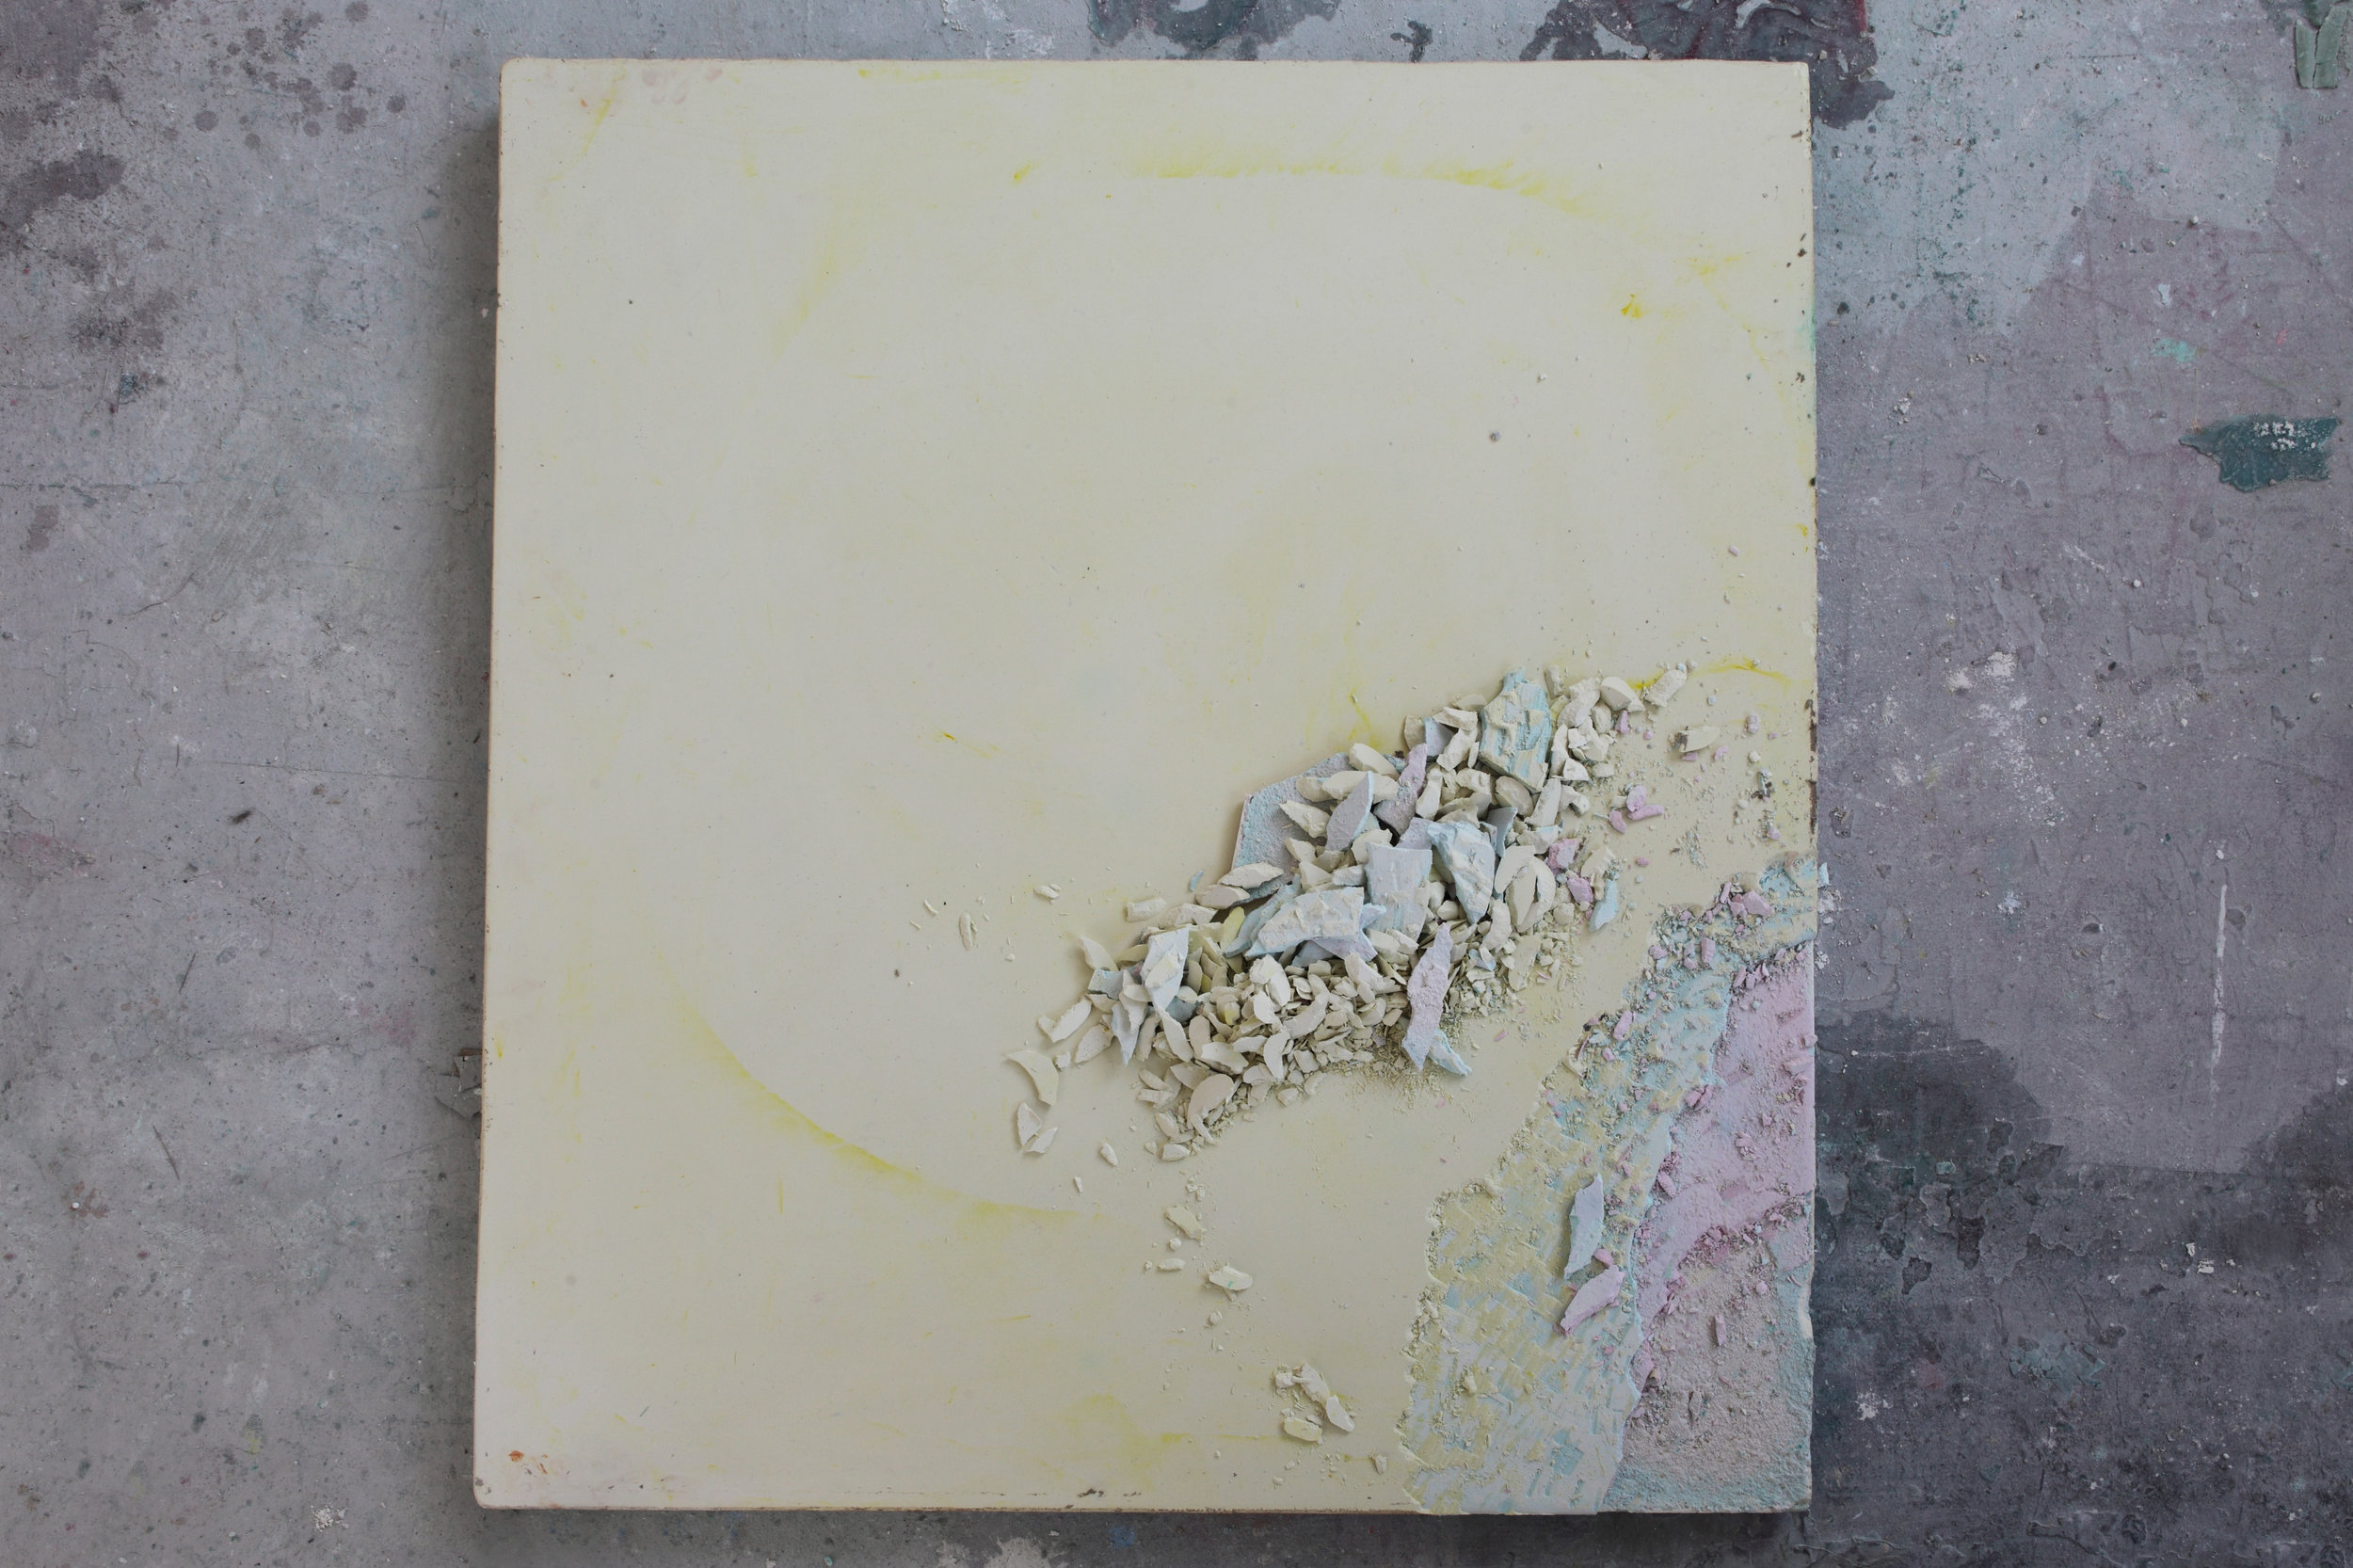 Studio View 2014: Chalk no. 4 - Colored chalk, 100 x 100 cm, Maastricht, 2014